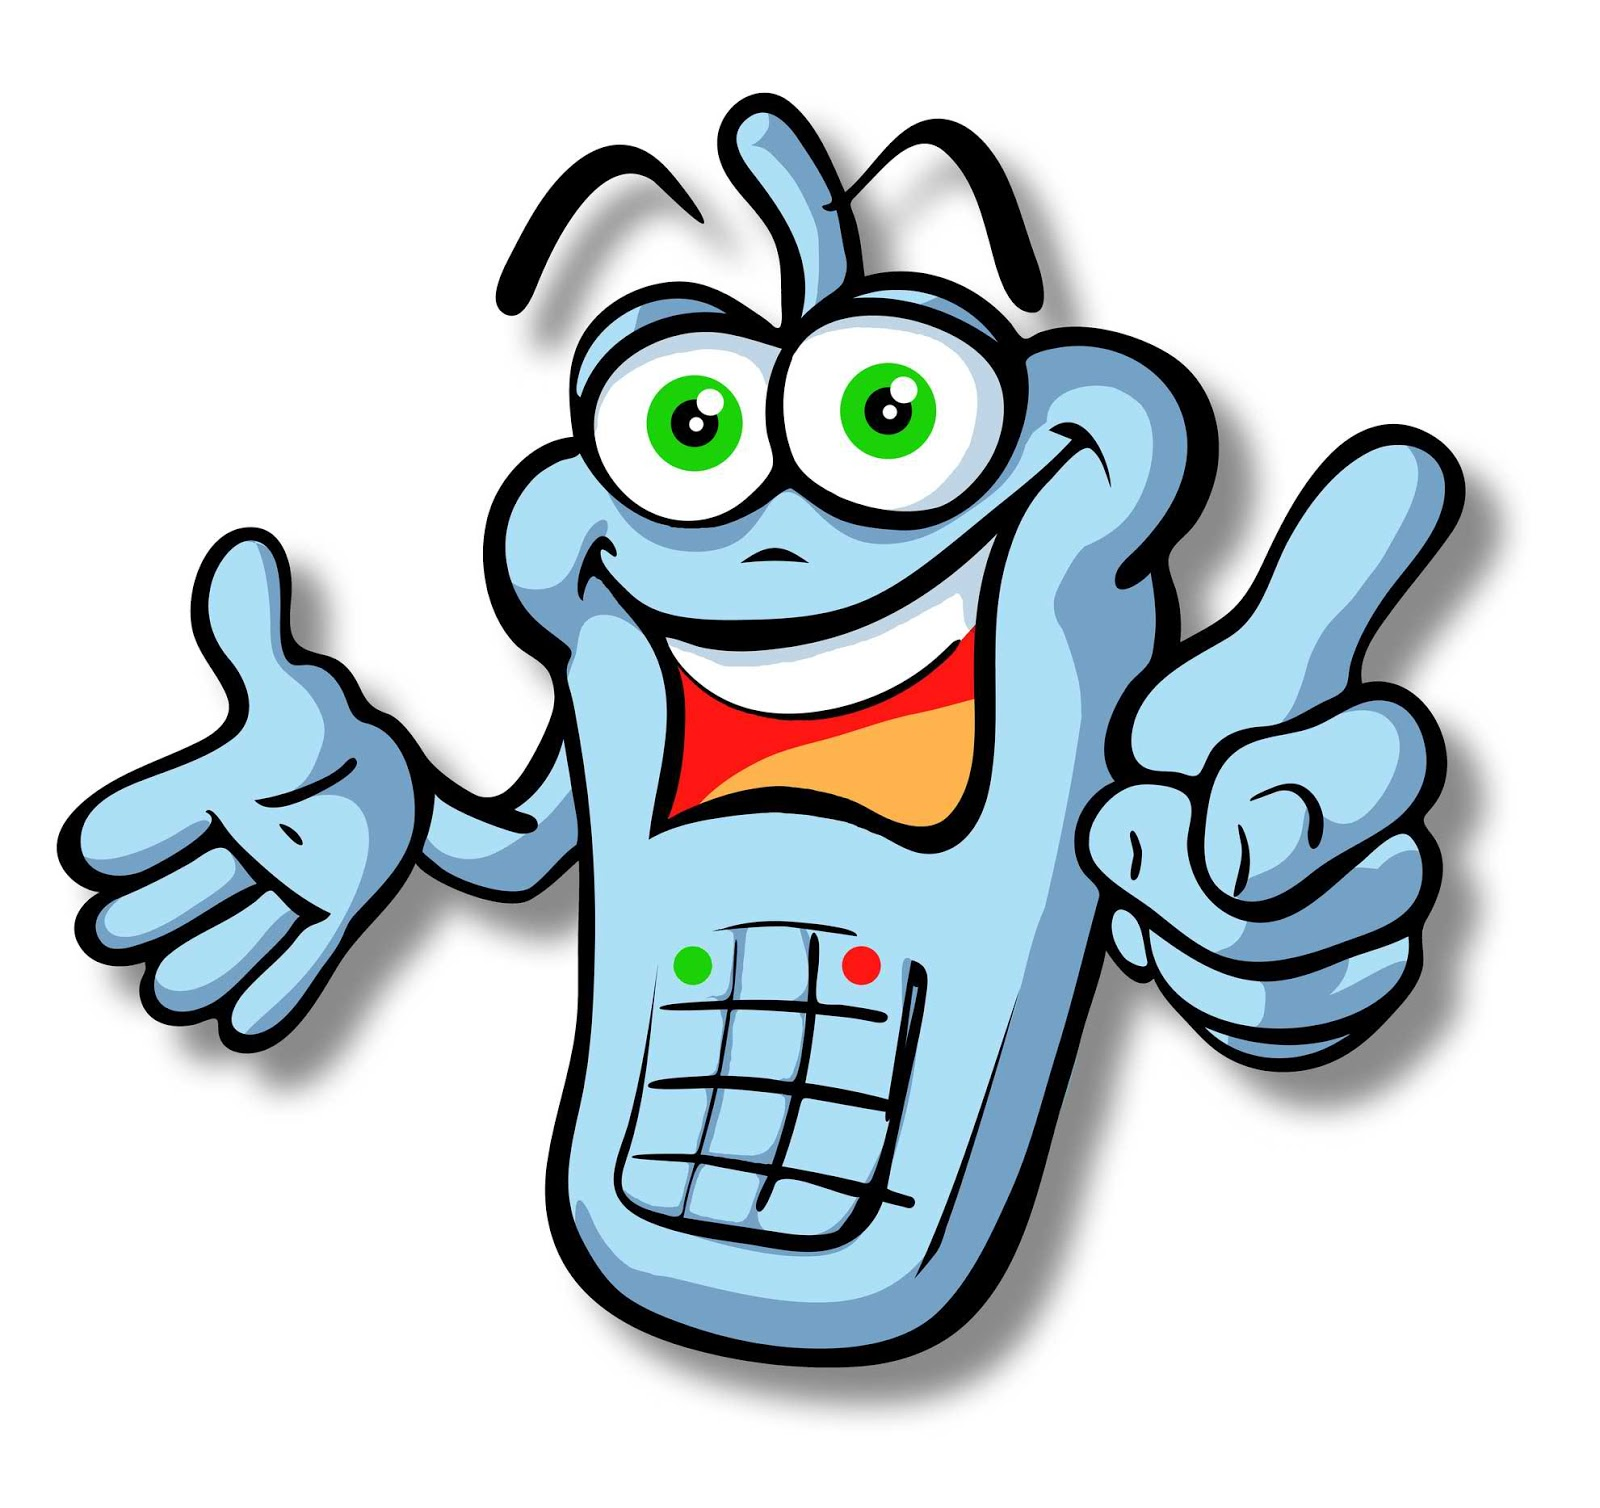 Free pictures of cell. Cellphone clipart cartoon